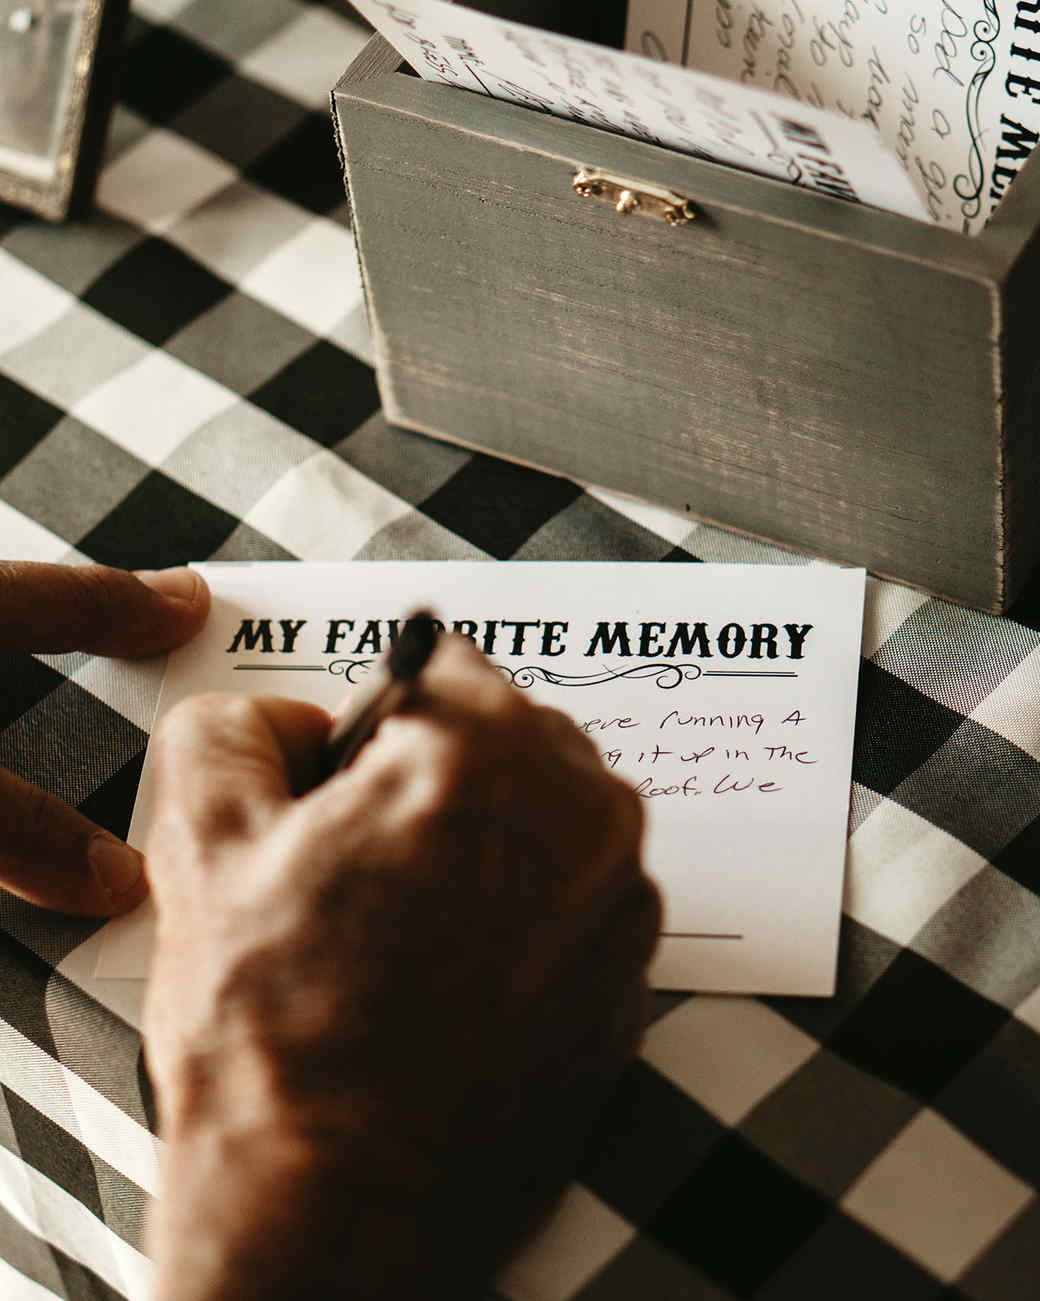 grandfather's 90th birthday man writing favorite memory